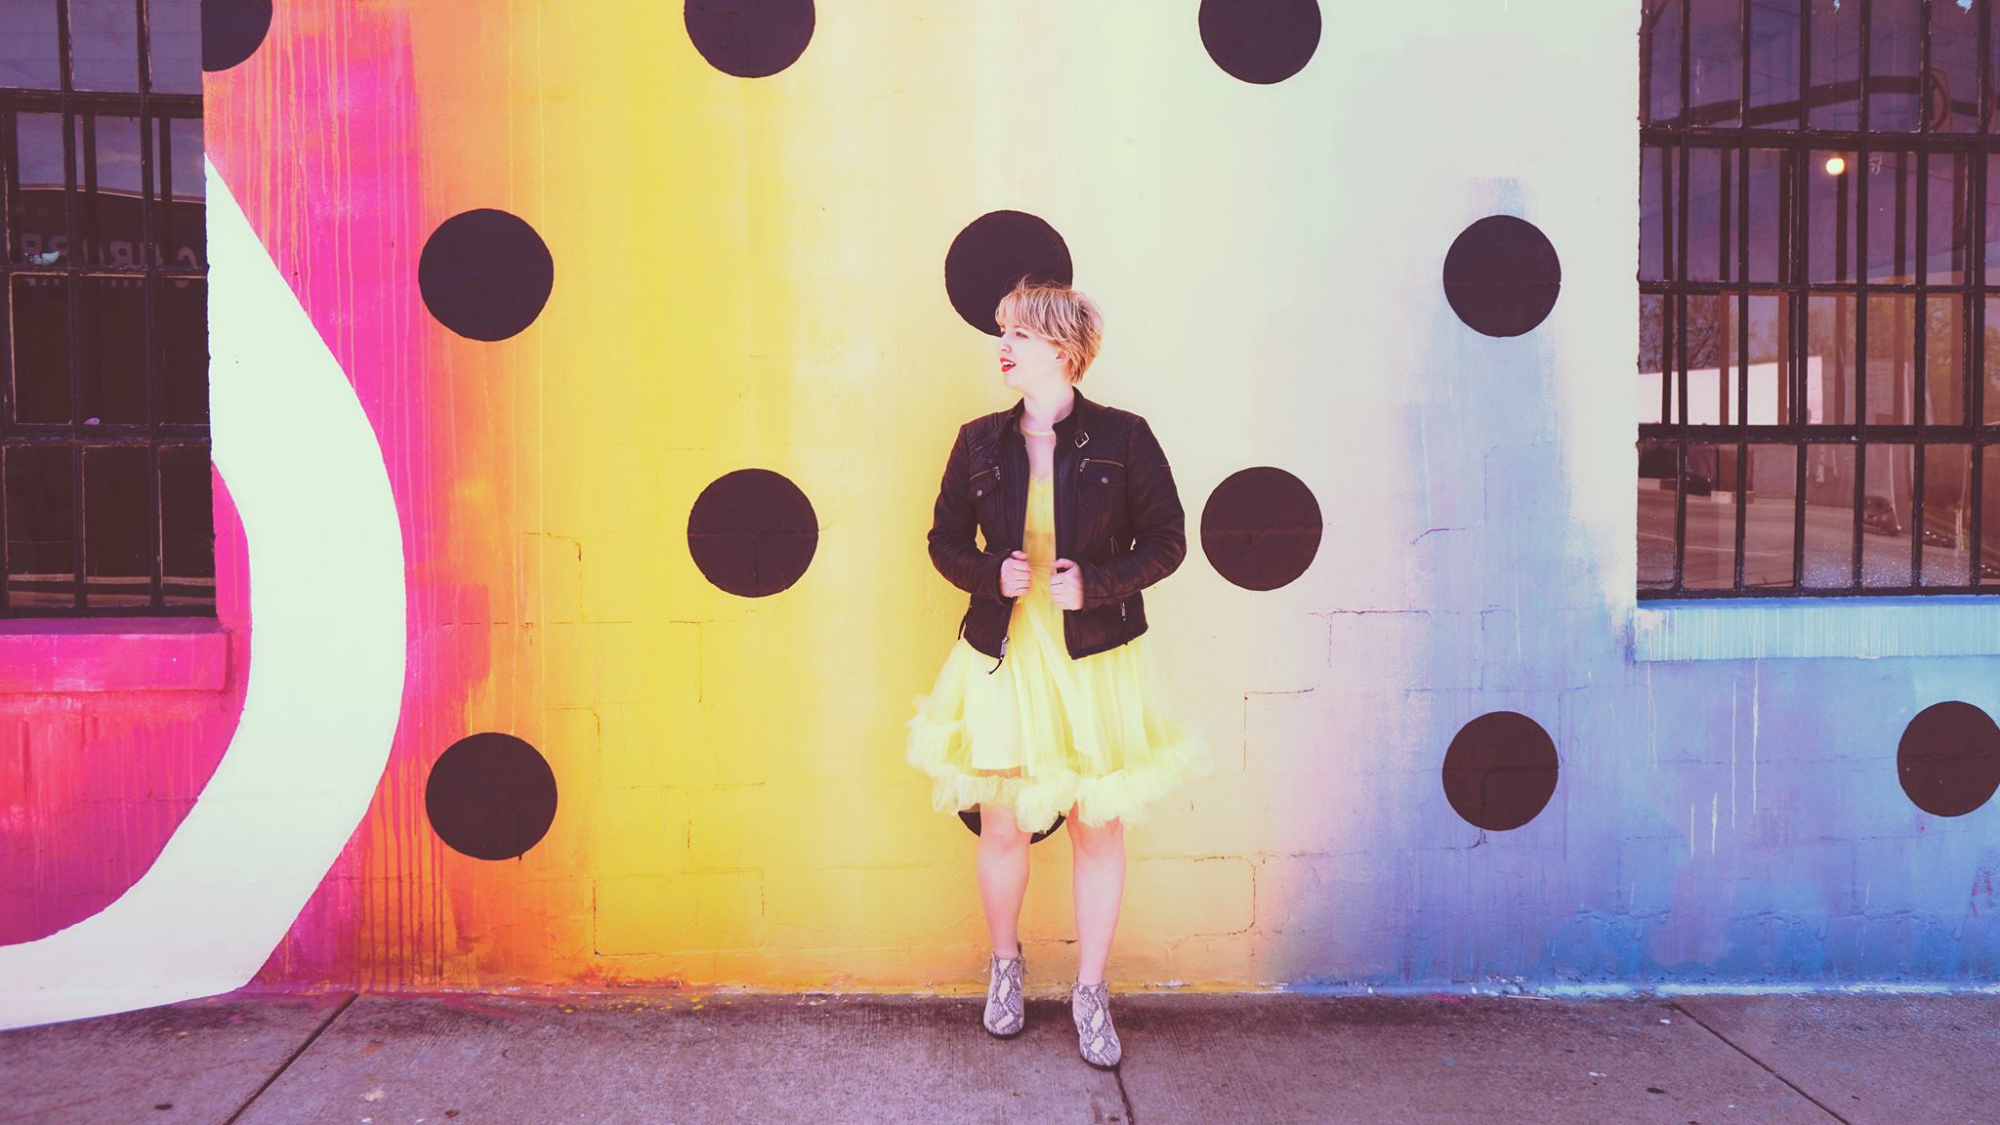 Kelly posing in front of a colorful mural.